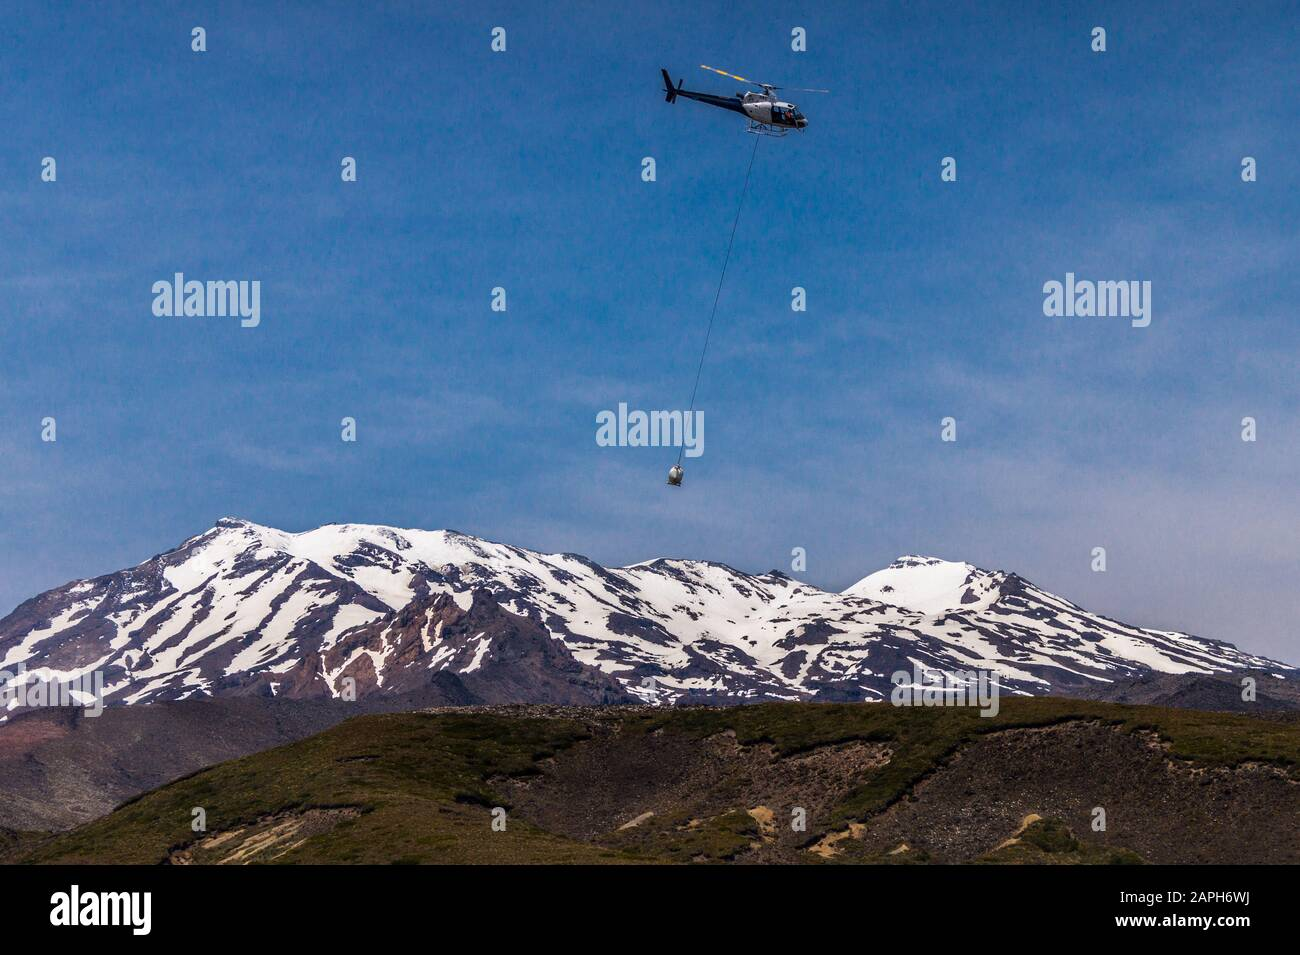 helicopter-on-public-toilet-cleaning-duty-flying-past-mount-ruapehu-tongariro-national-park-north-island-new-zealand-2APH6WJ.jpg